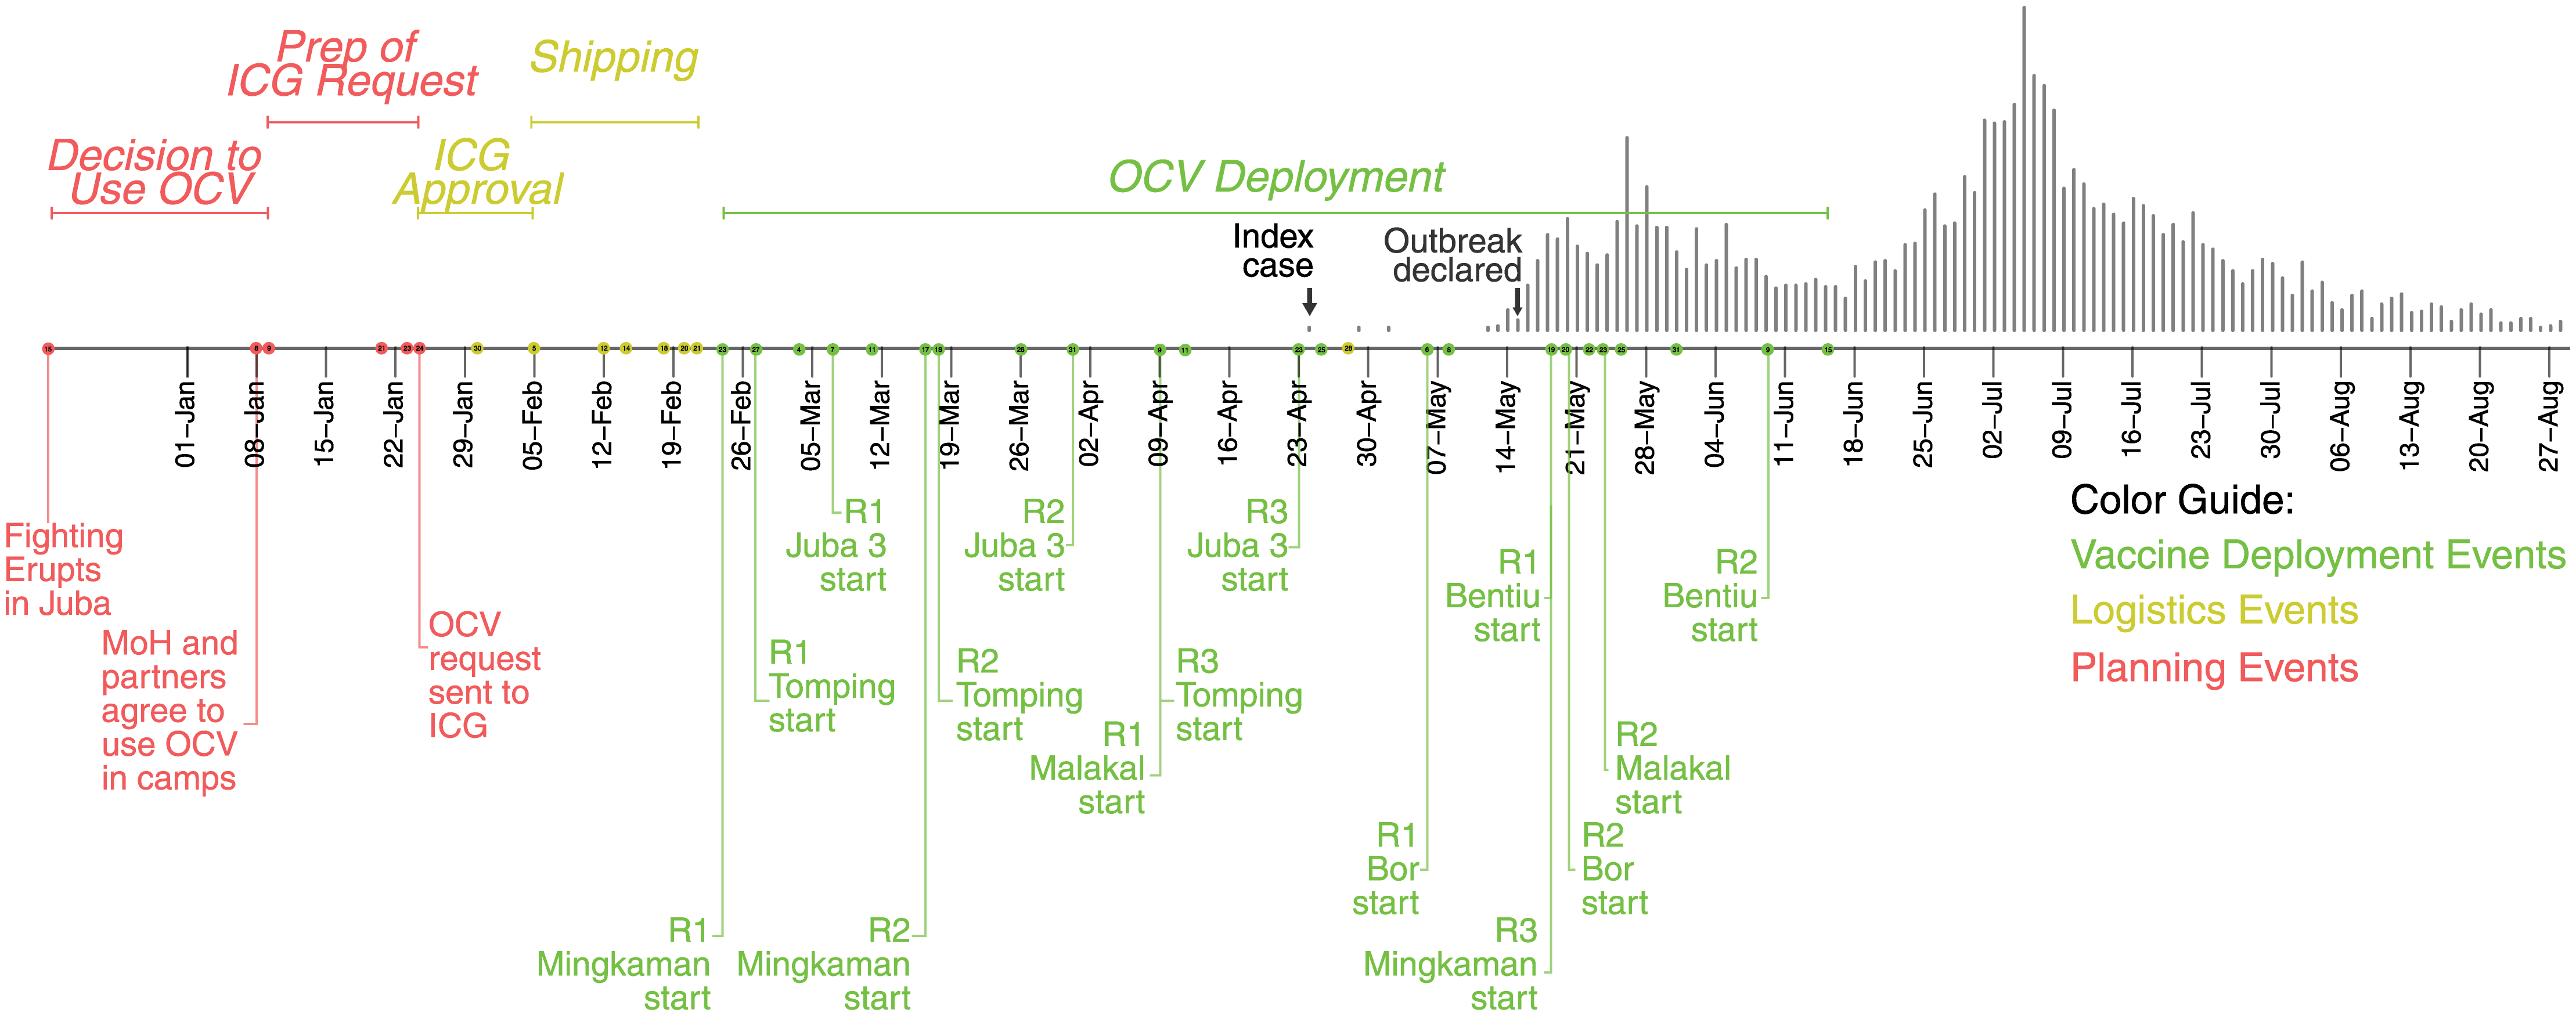 Timeline of key vaccination events in South Sudan in 2014.